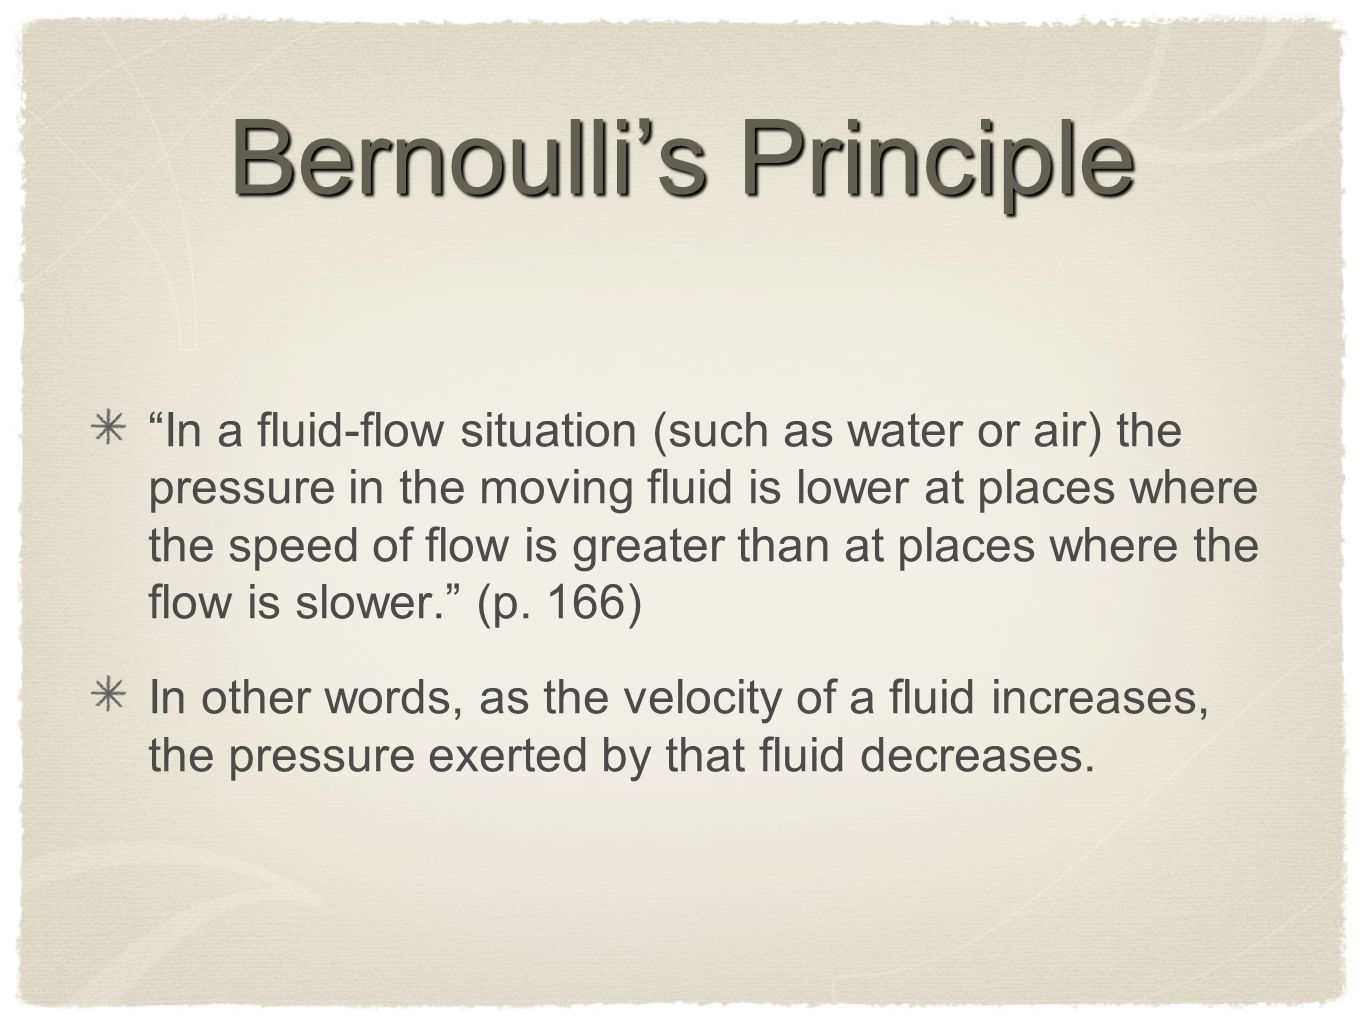 Bernoulli's Principle In a fluid-flow situation (such as water or air) the pressure in the moving fluid is lower at places where the speed of flow is greater than at places where the flow is slower. (p.